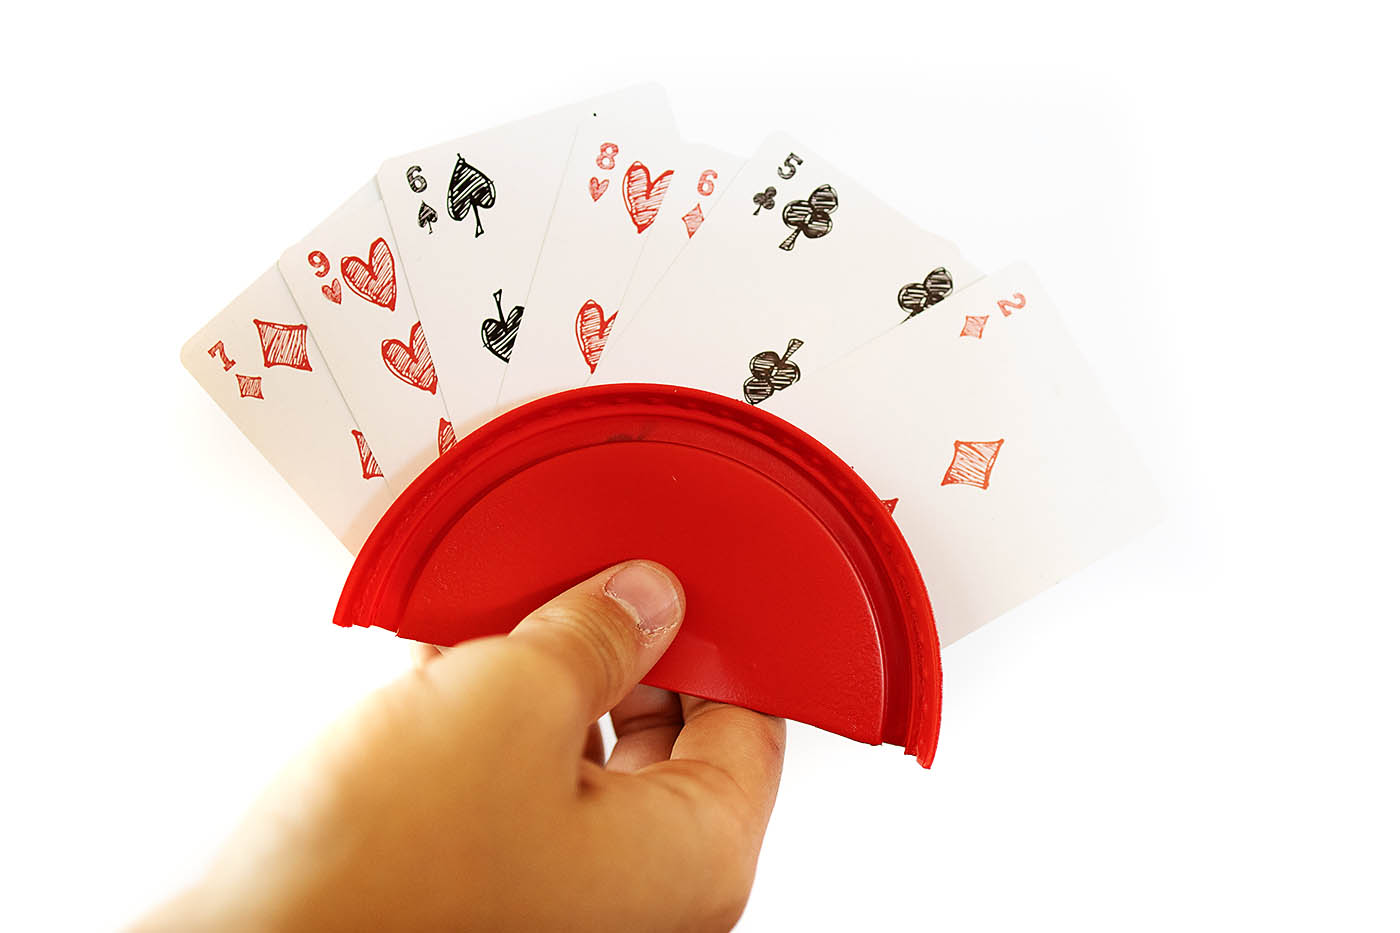 How to make a DIY playing card holder using Plasti Dip Craft for a non-slip rubber coating